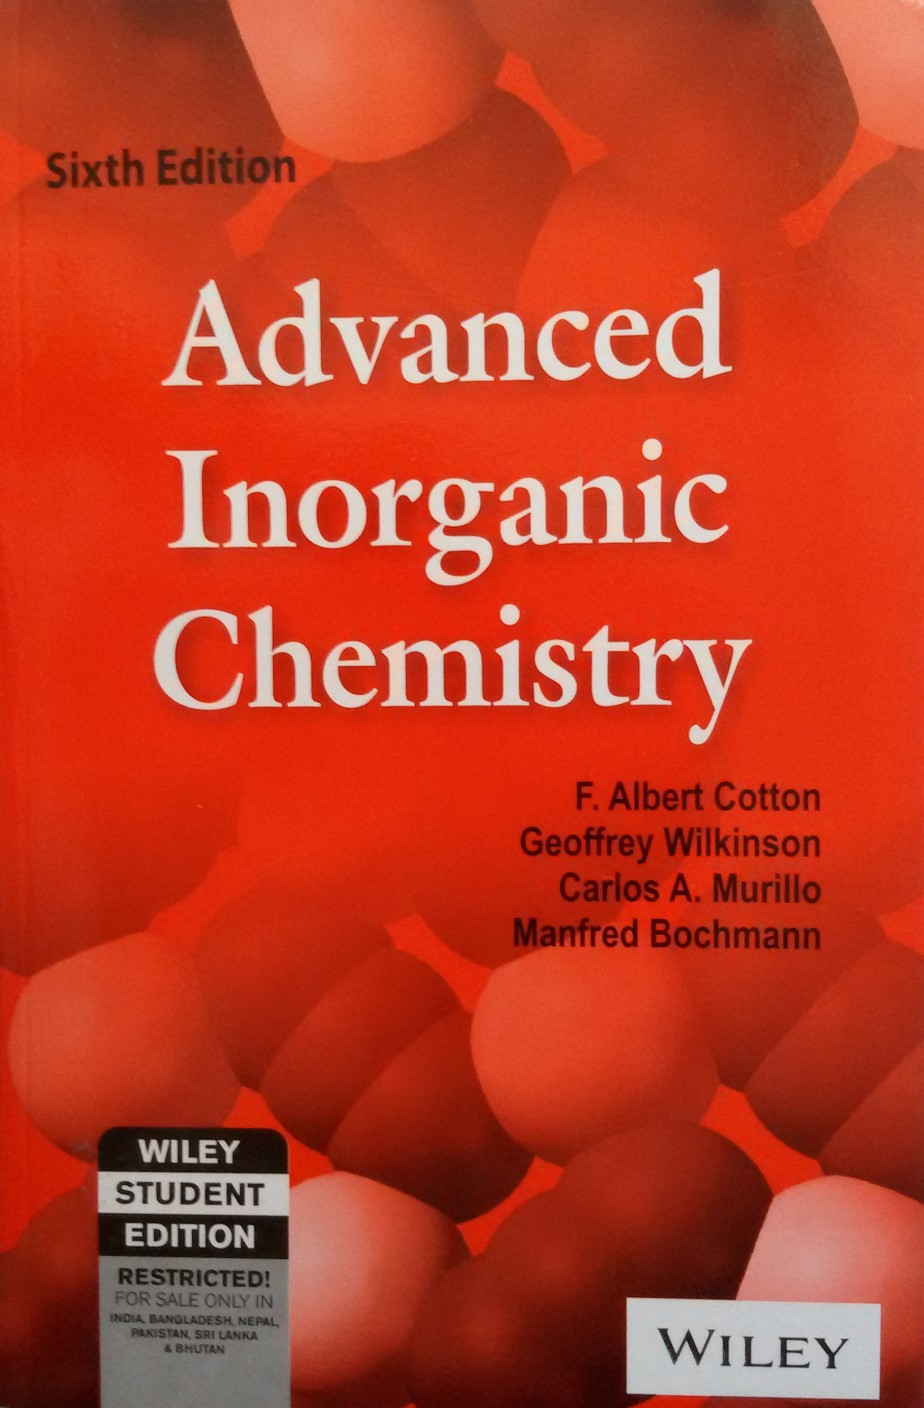 advanced inorganic chemistry th edition buy advanced inorganic advanced inorganic chemistry 6th edition add to cart